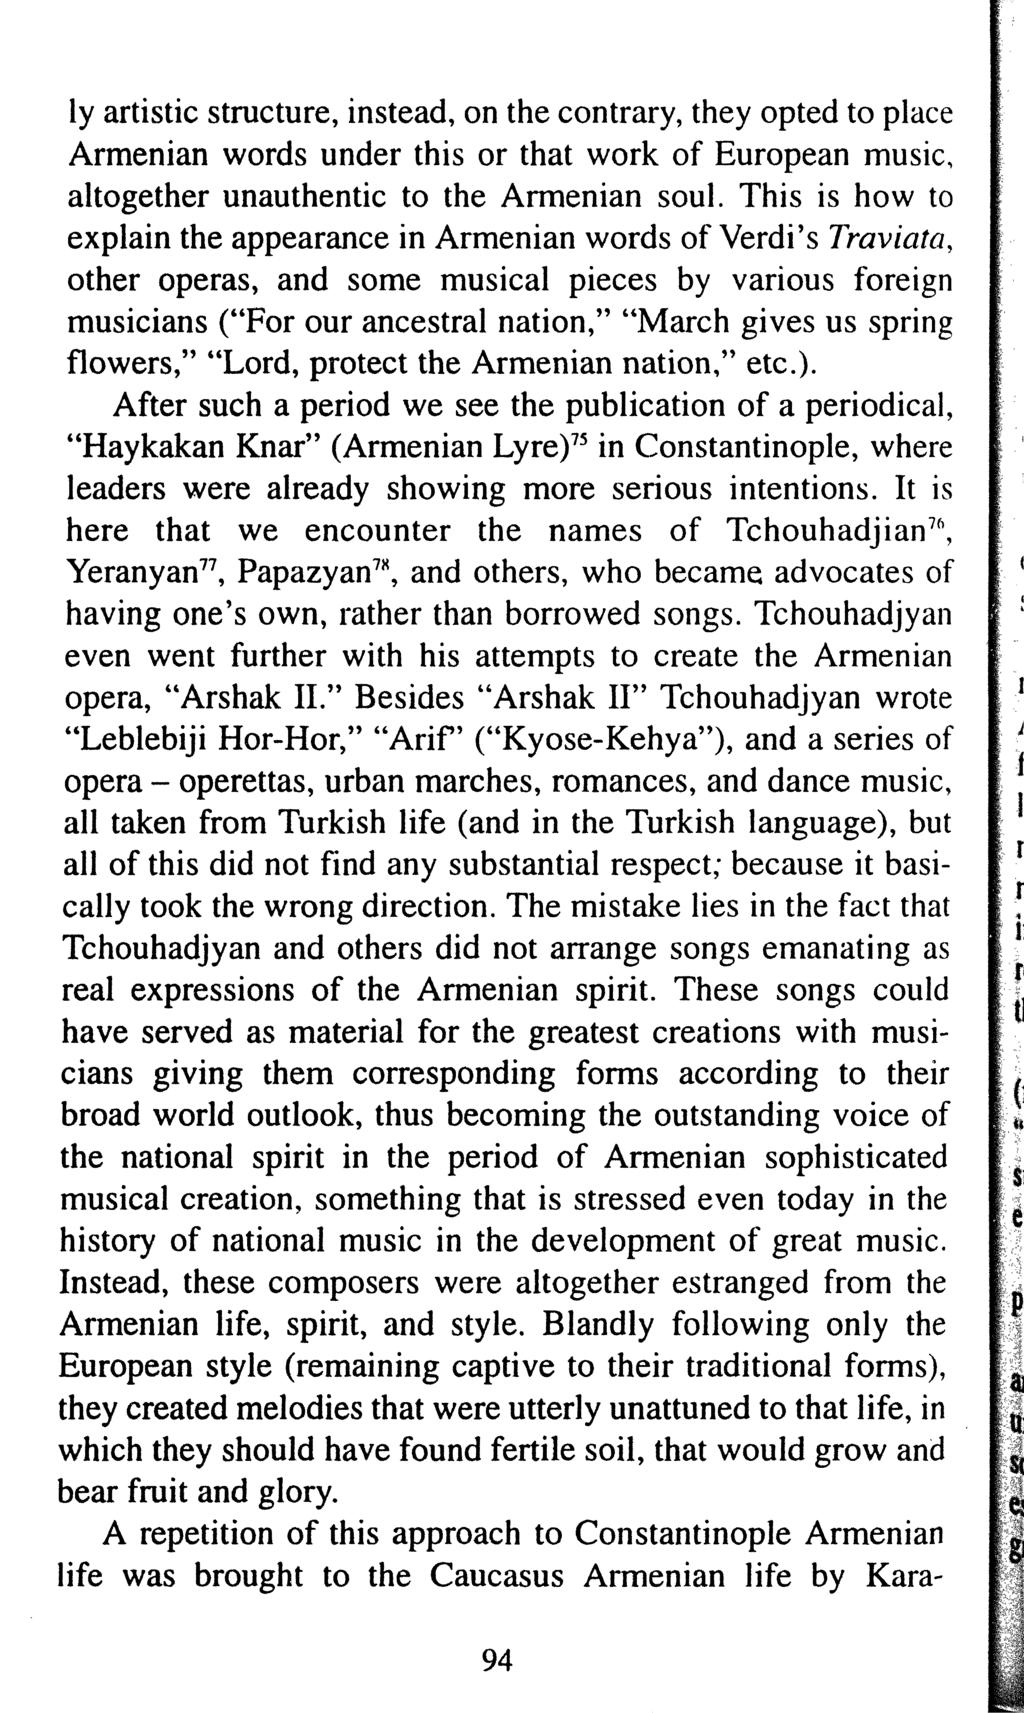 ly artistic structure, instead, on the contrary, they opted to place Armenian words under this or that work of European music, altogether unauthentic to the Armenian soul.